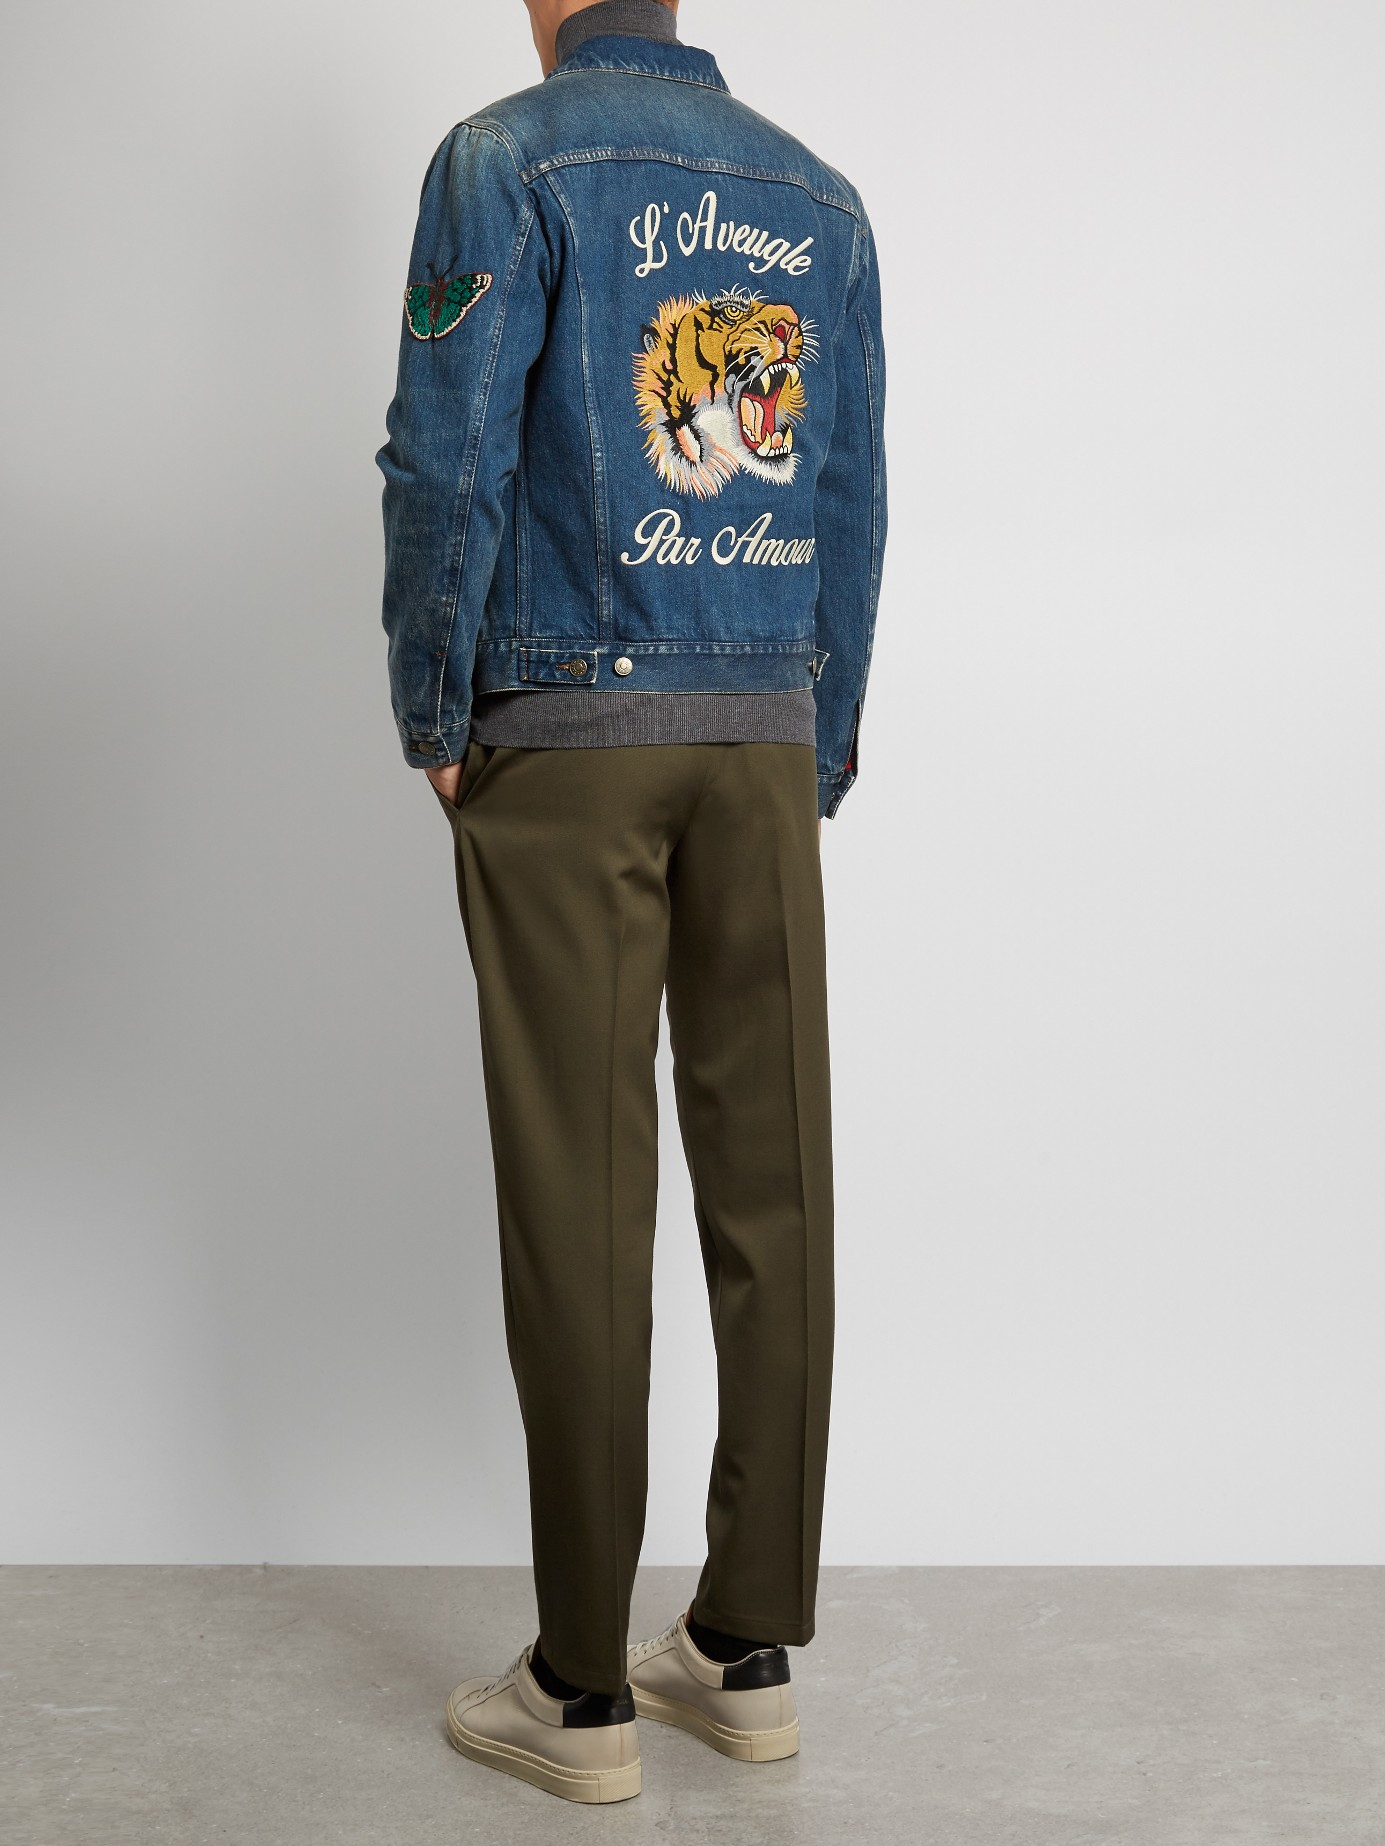 e7688160f Gucci Tiger Jeans Jacket. Gucci Embroiderd Tiger Denim Jacket in Blue for  Men - Lyst